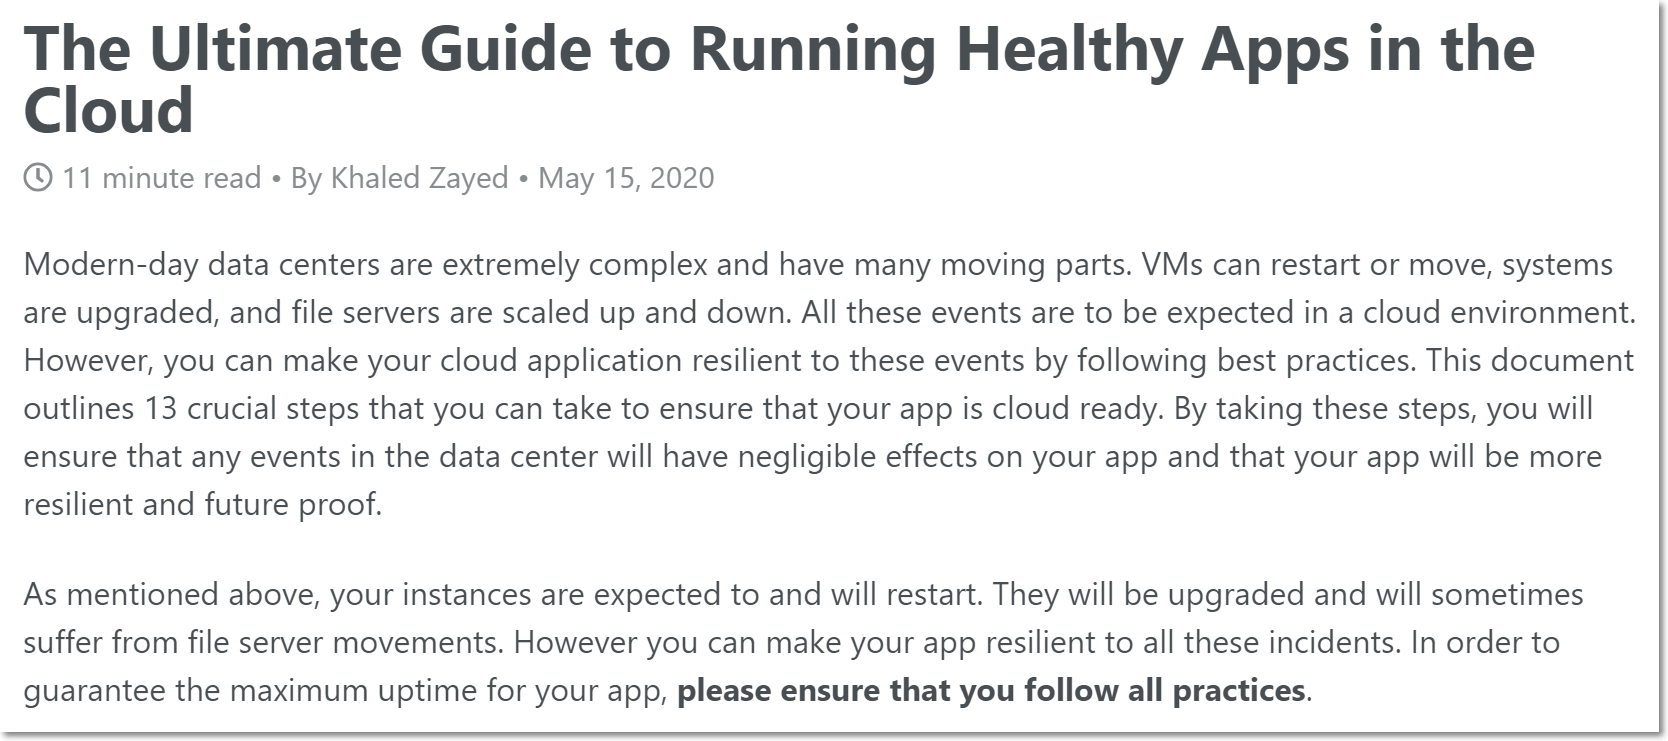 The Ultimate Guide to Running Healthy Apps in the Cloud